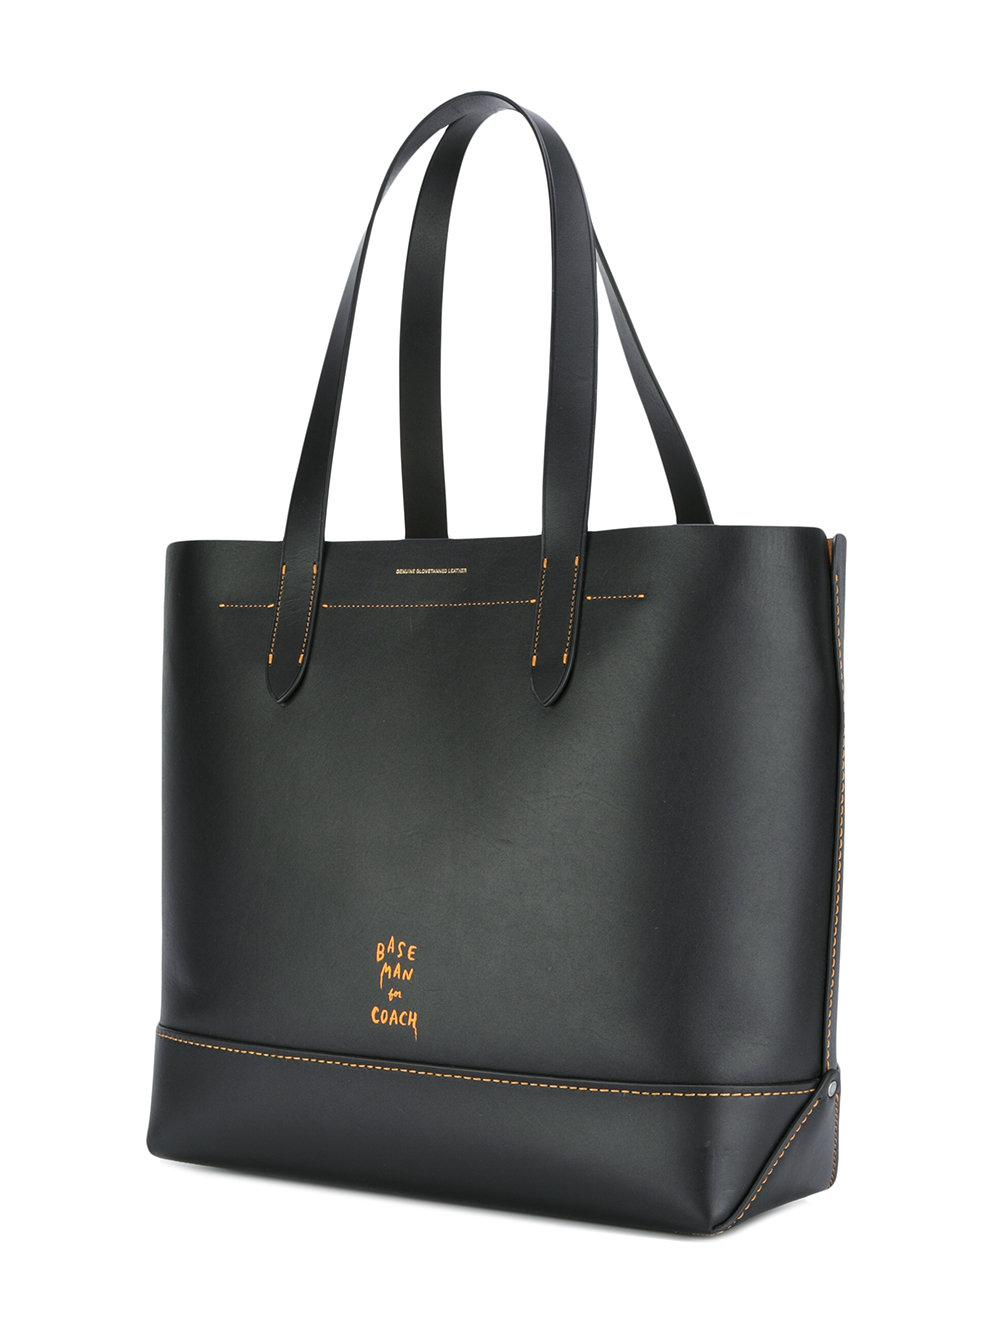 COACH Leather Smiley Print Tote in Black for Men